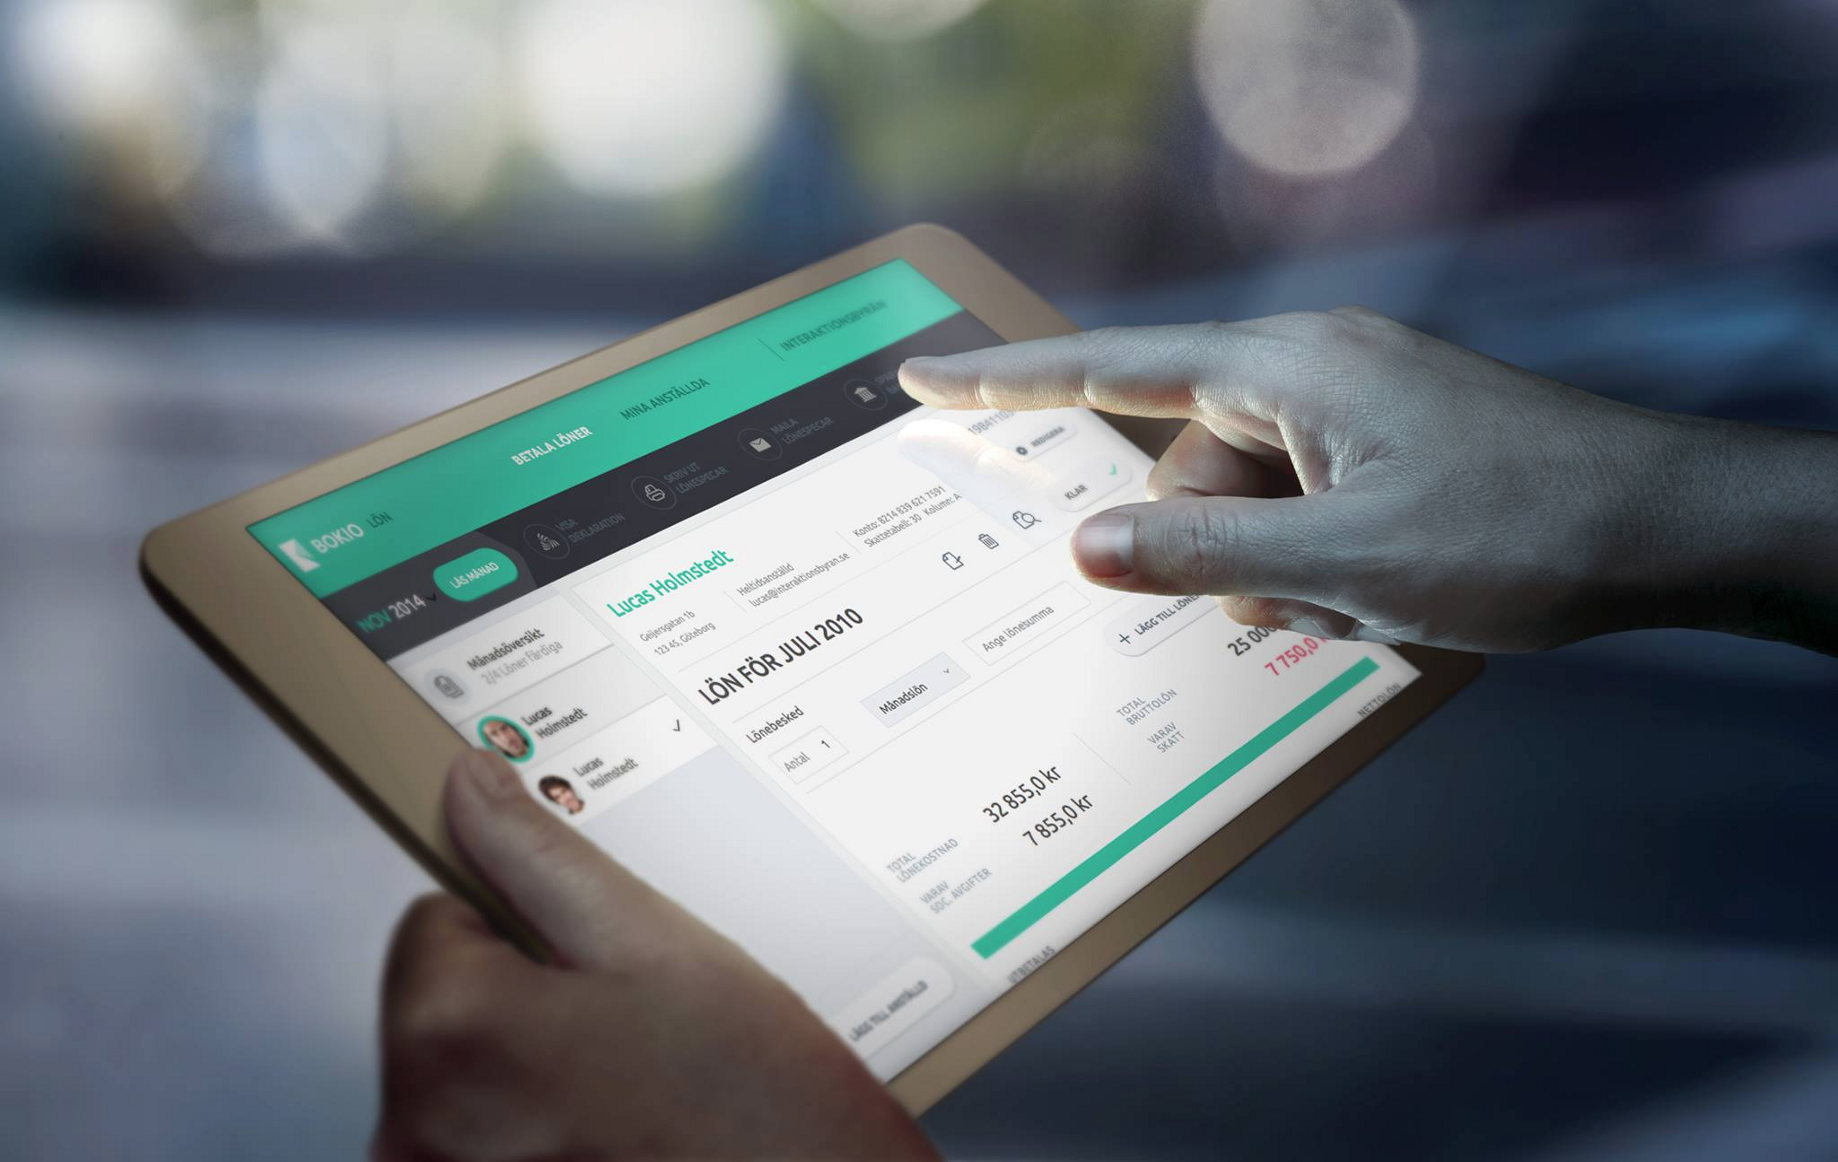 Automating bookkeeping for small businesses, free of charge